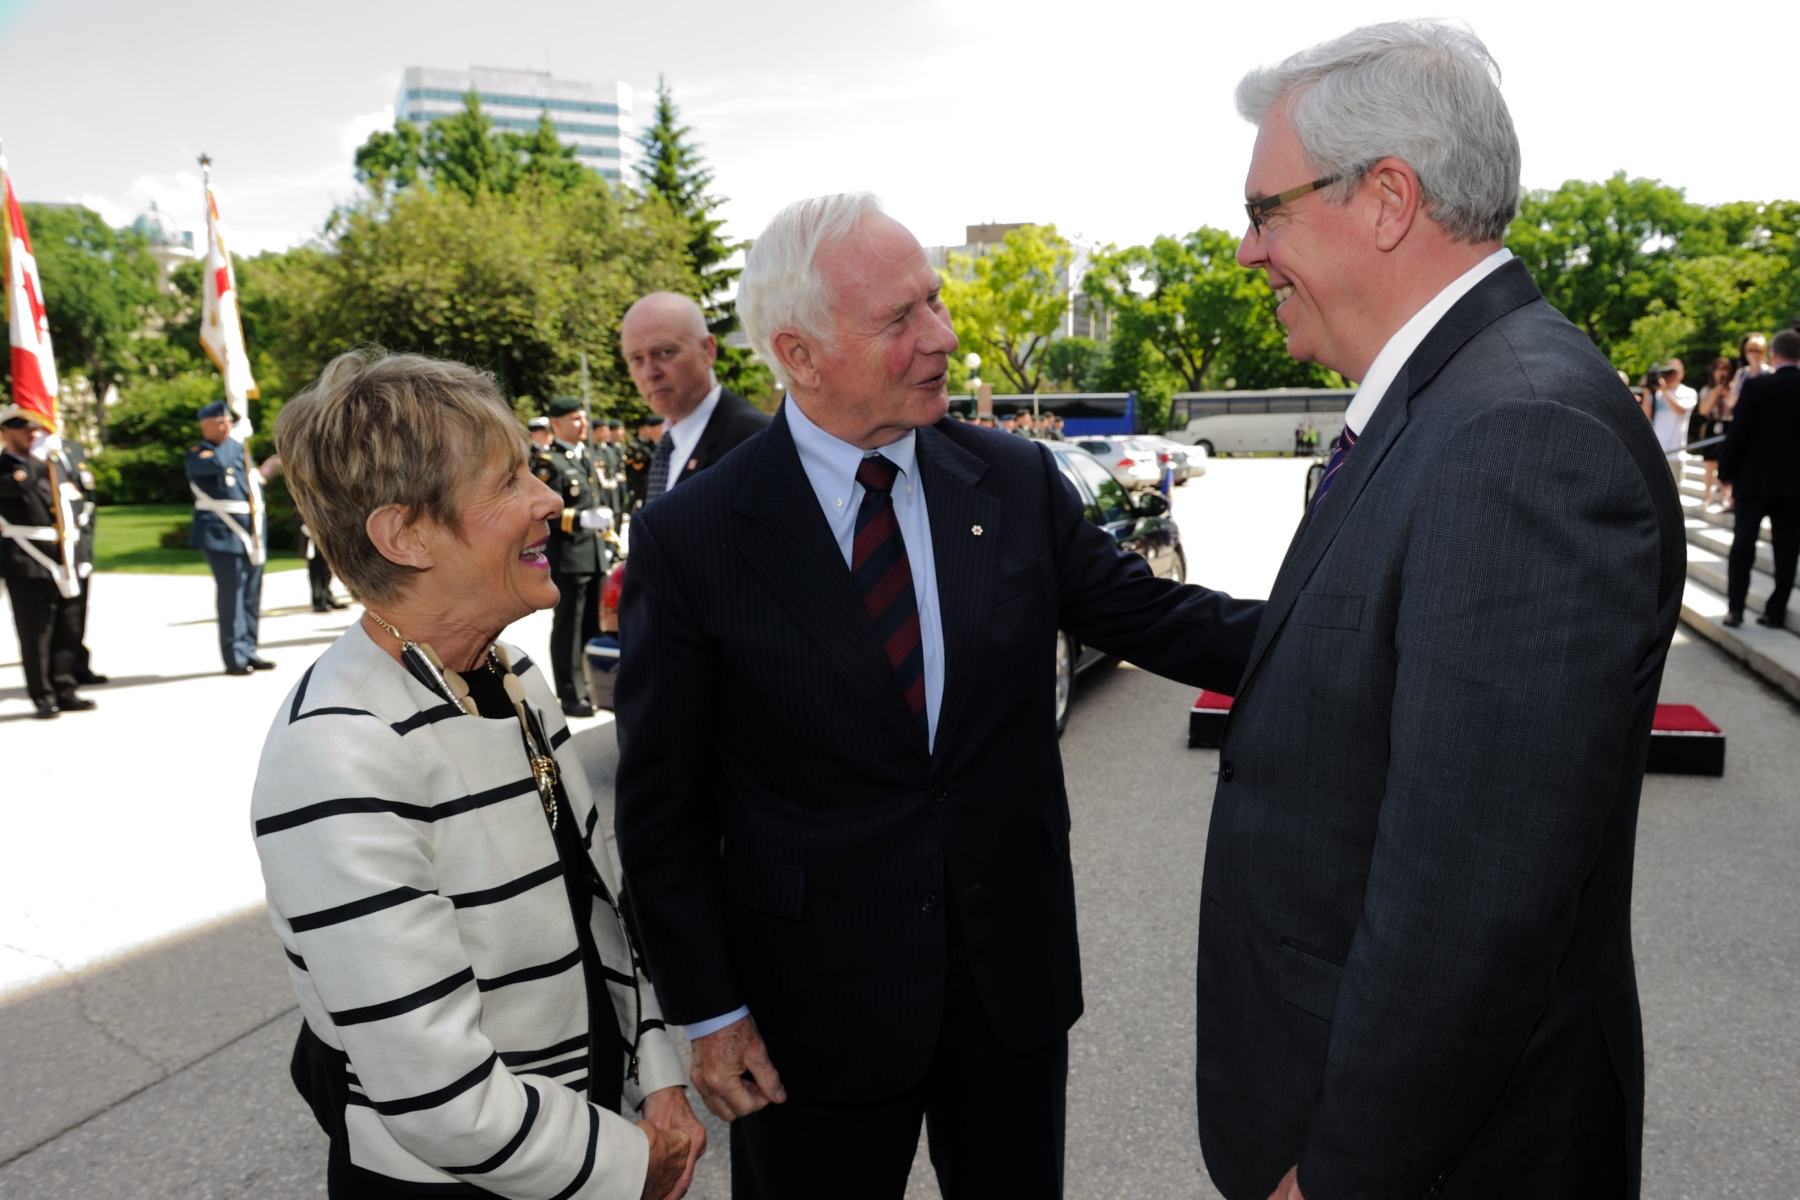 Upon their arrival in Winnipeg, Their Excellencies were greeted by the Honourable Greg Selinger, Premier of Manitoba.